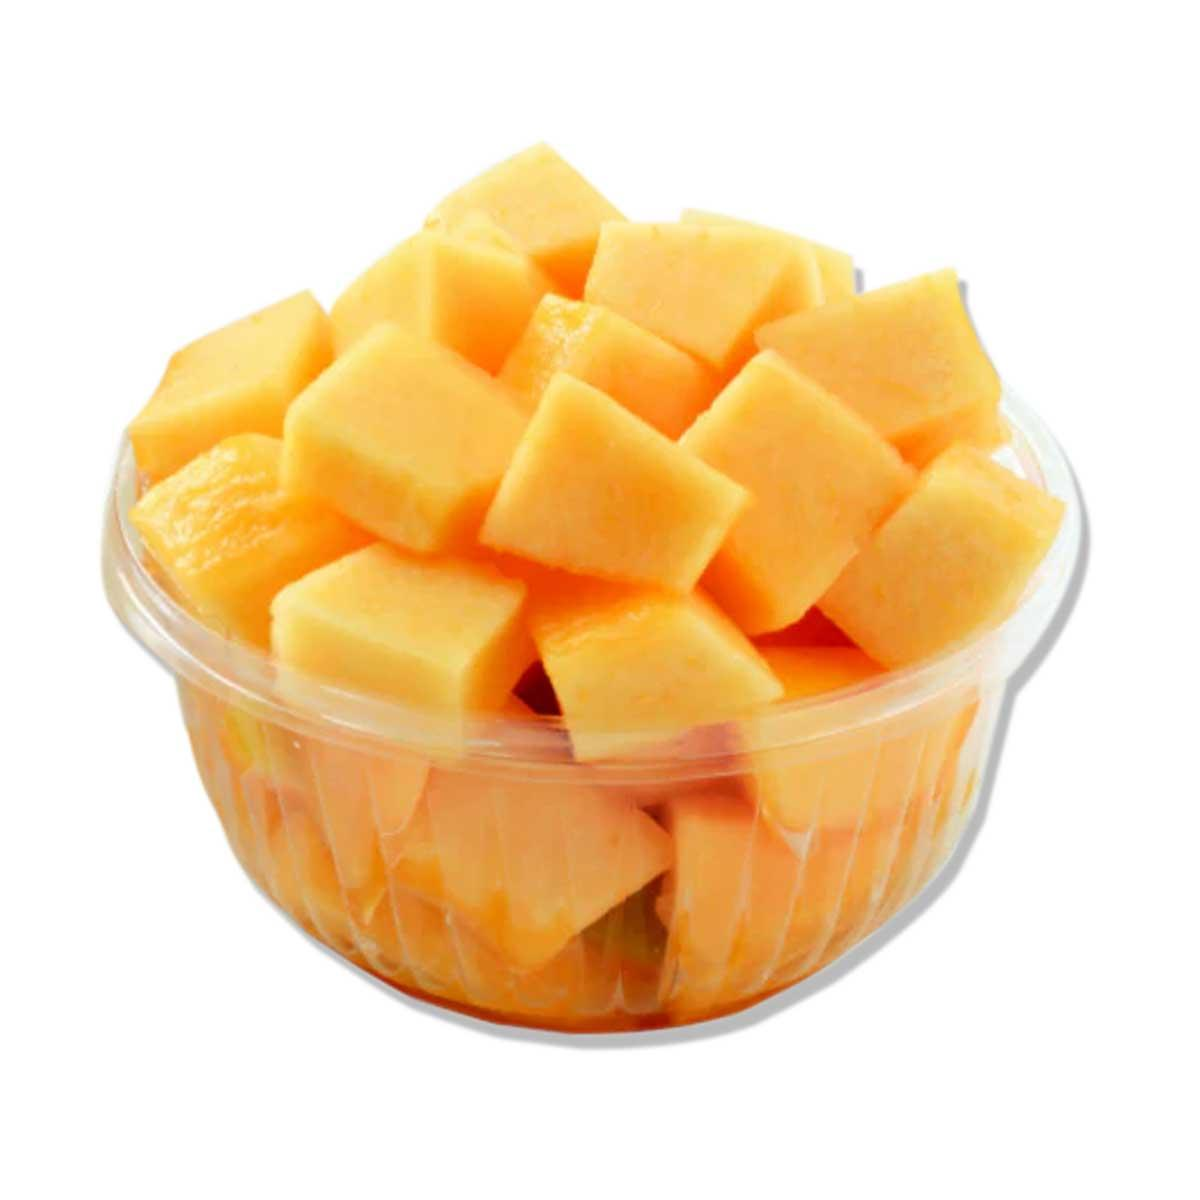 Sweet melon chunks